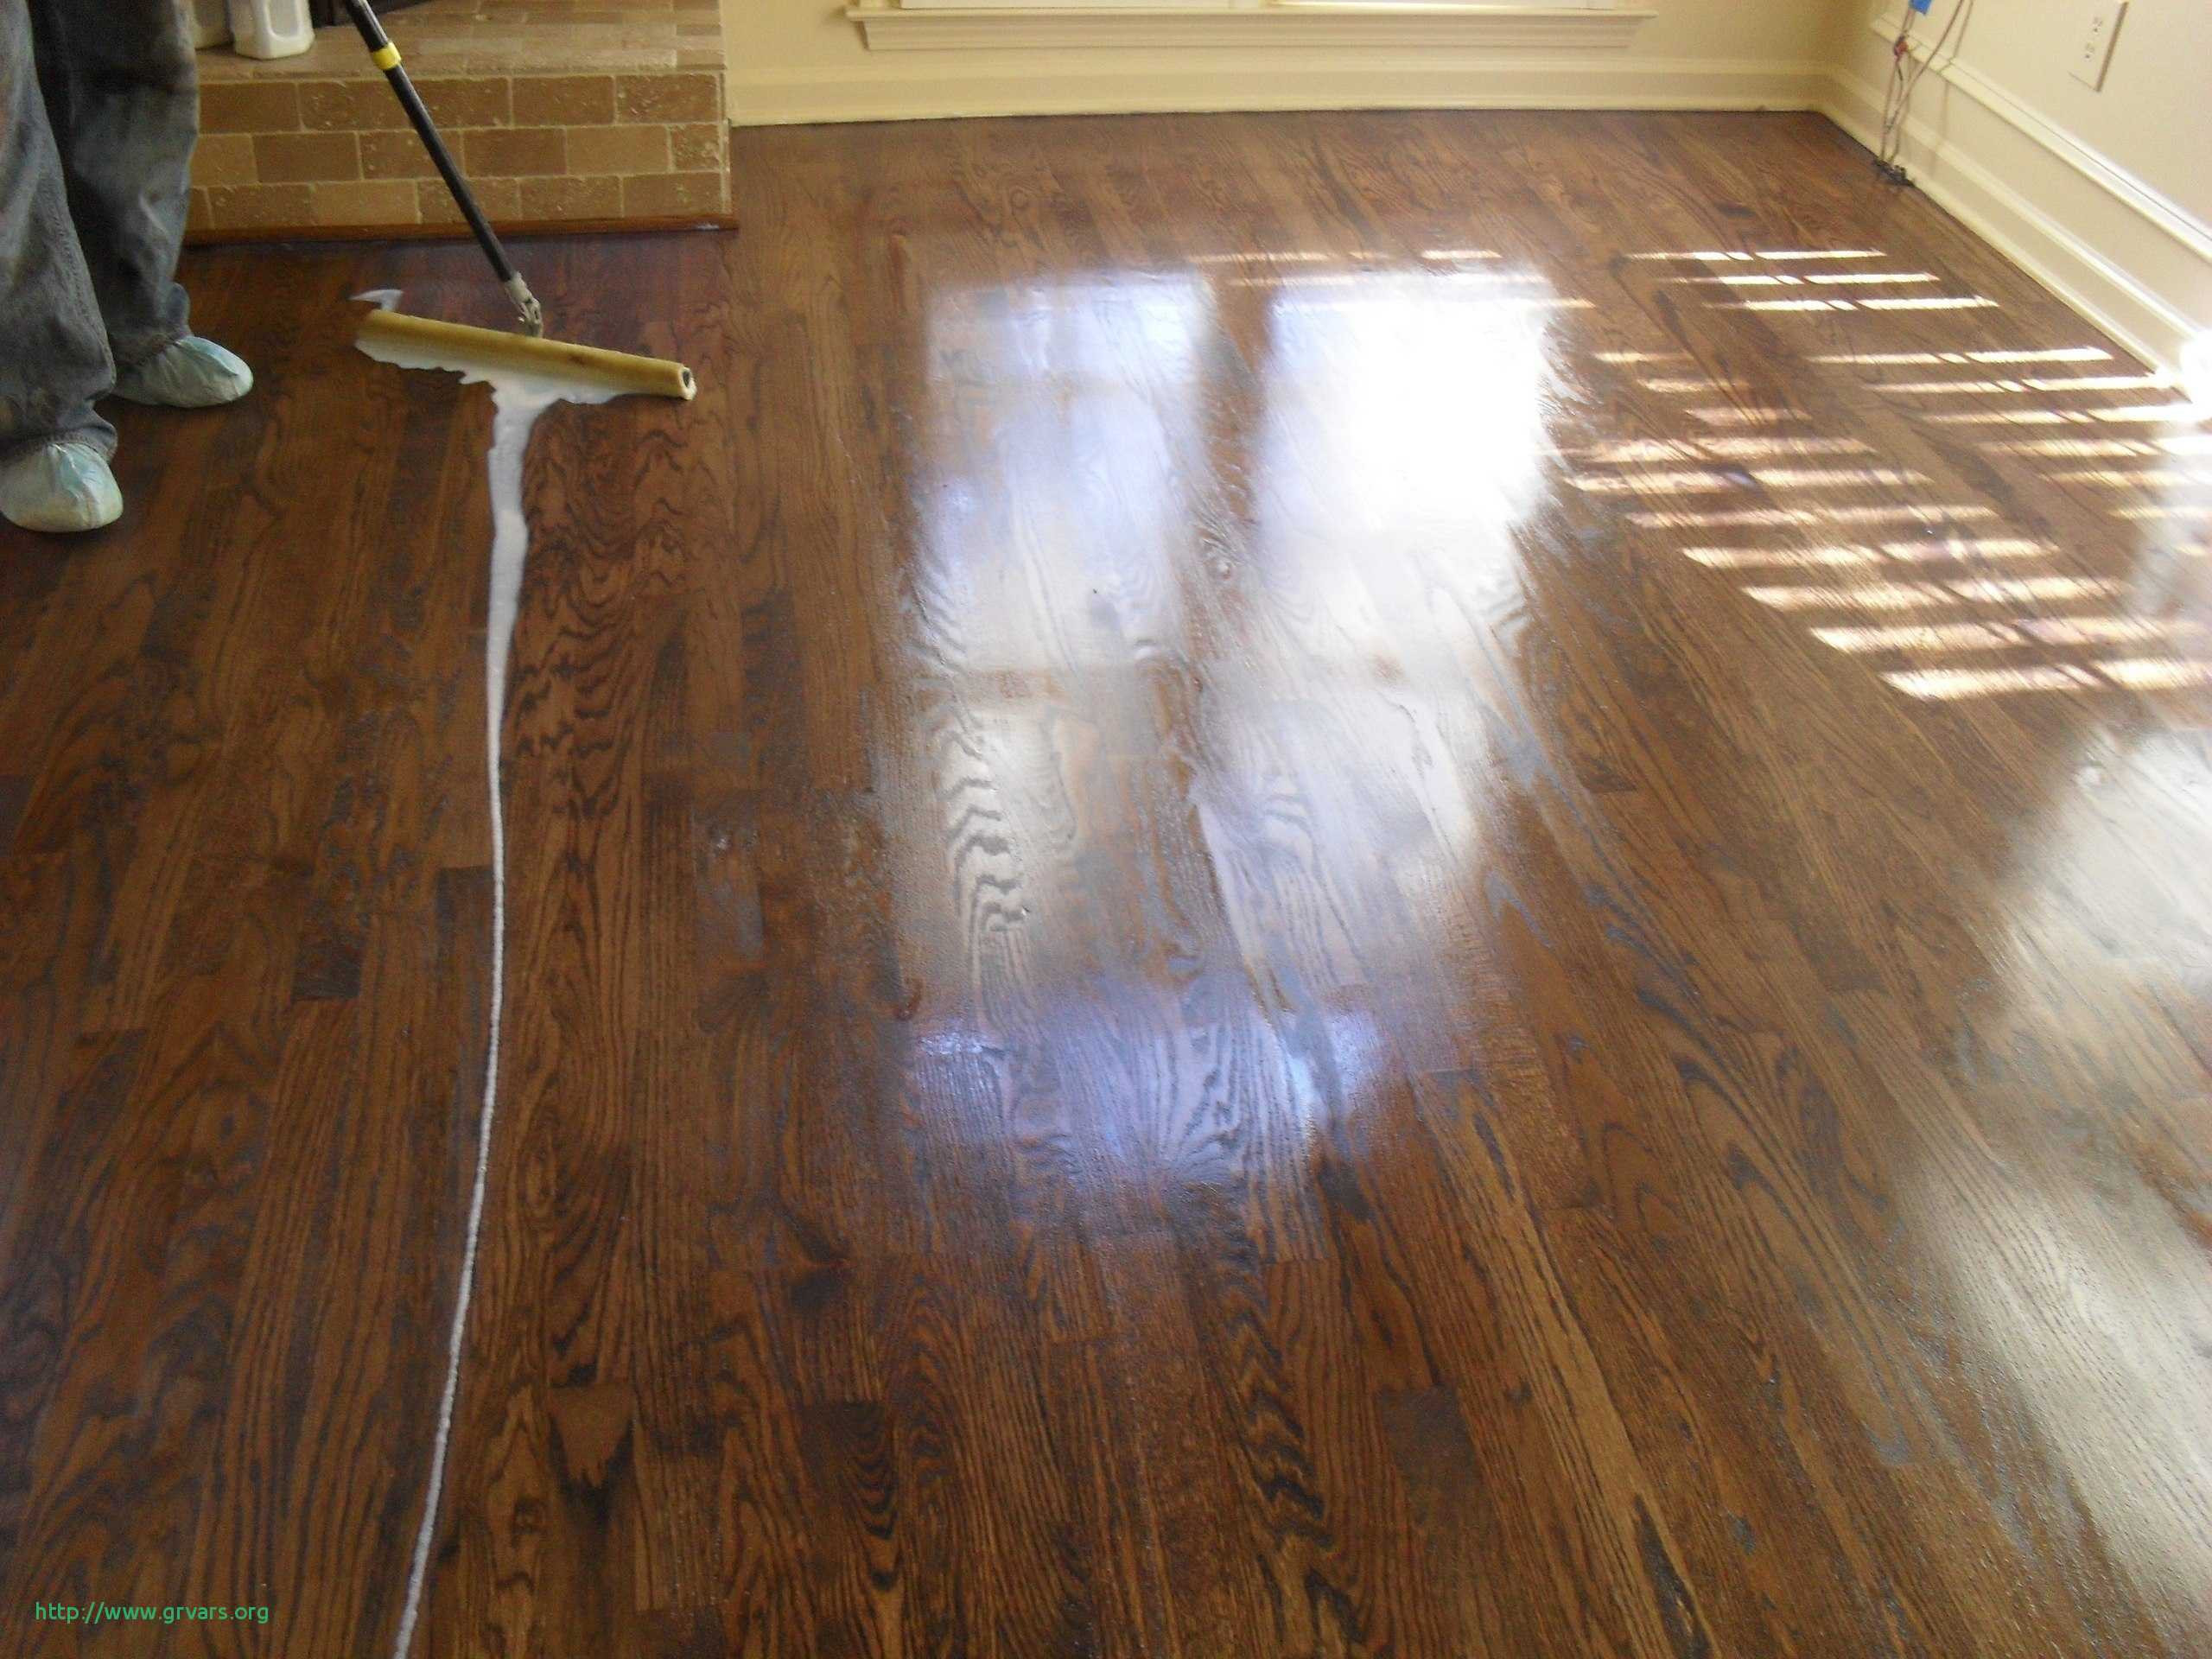 restaining hardwood floors darker of image number 6563 from post restoring old hardwood floors will within nouveau hardwood floors yourself ideas restoring old will inspirant redo without sanding podemosleganes lovely refinishingod pet